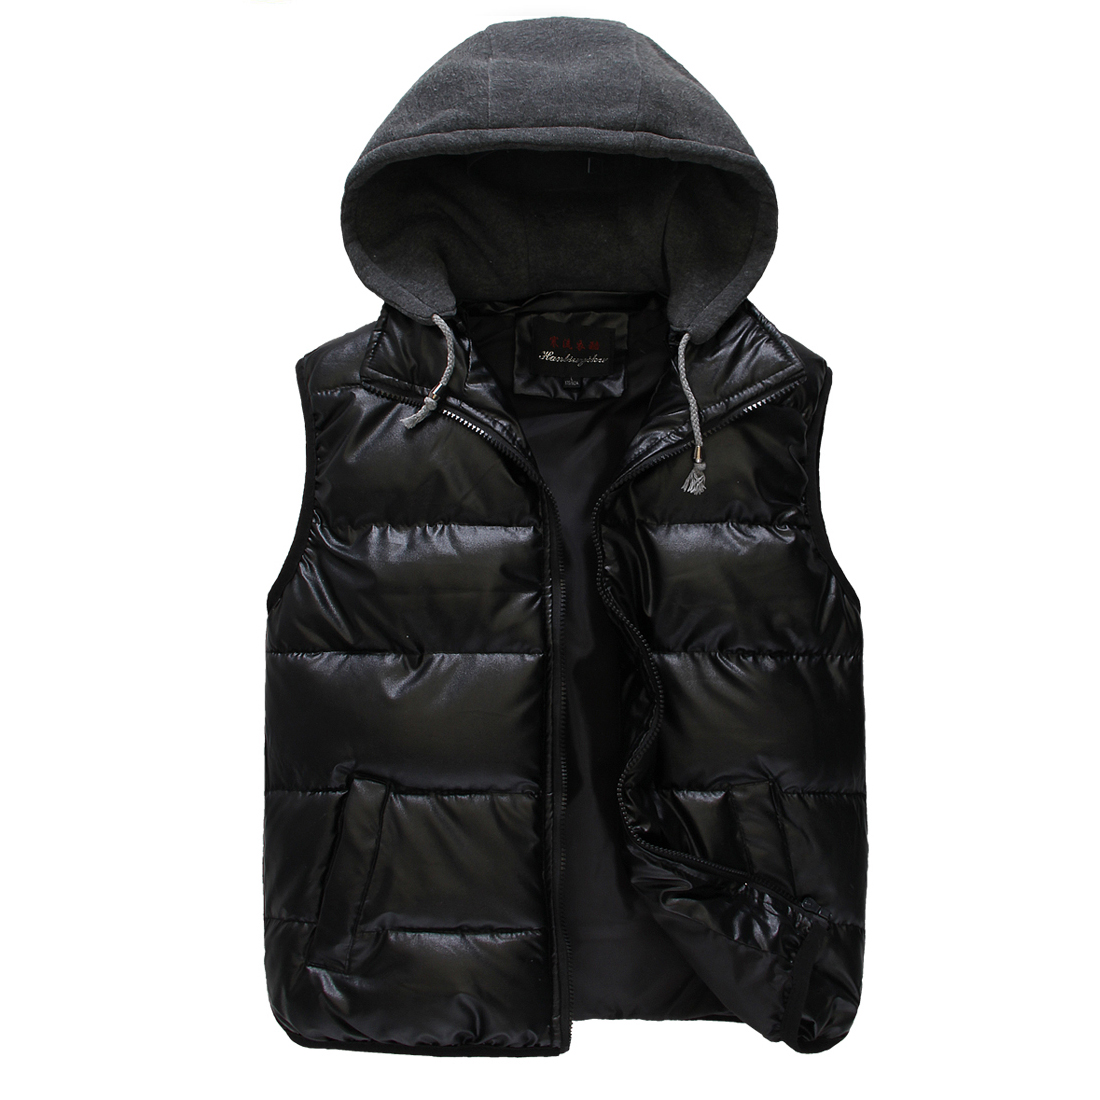 Stylish Movable Hood Design Black Faux Leather Warm Padded Vest for Man S